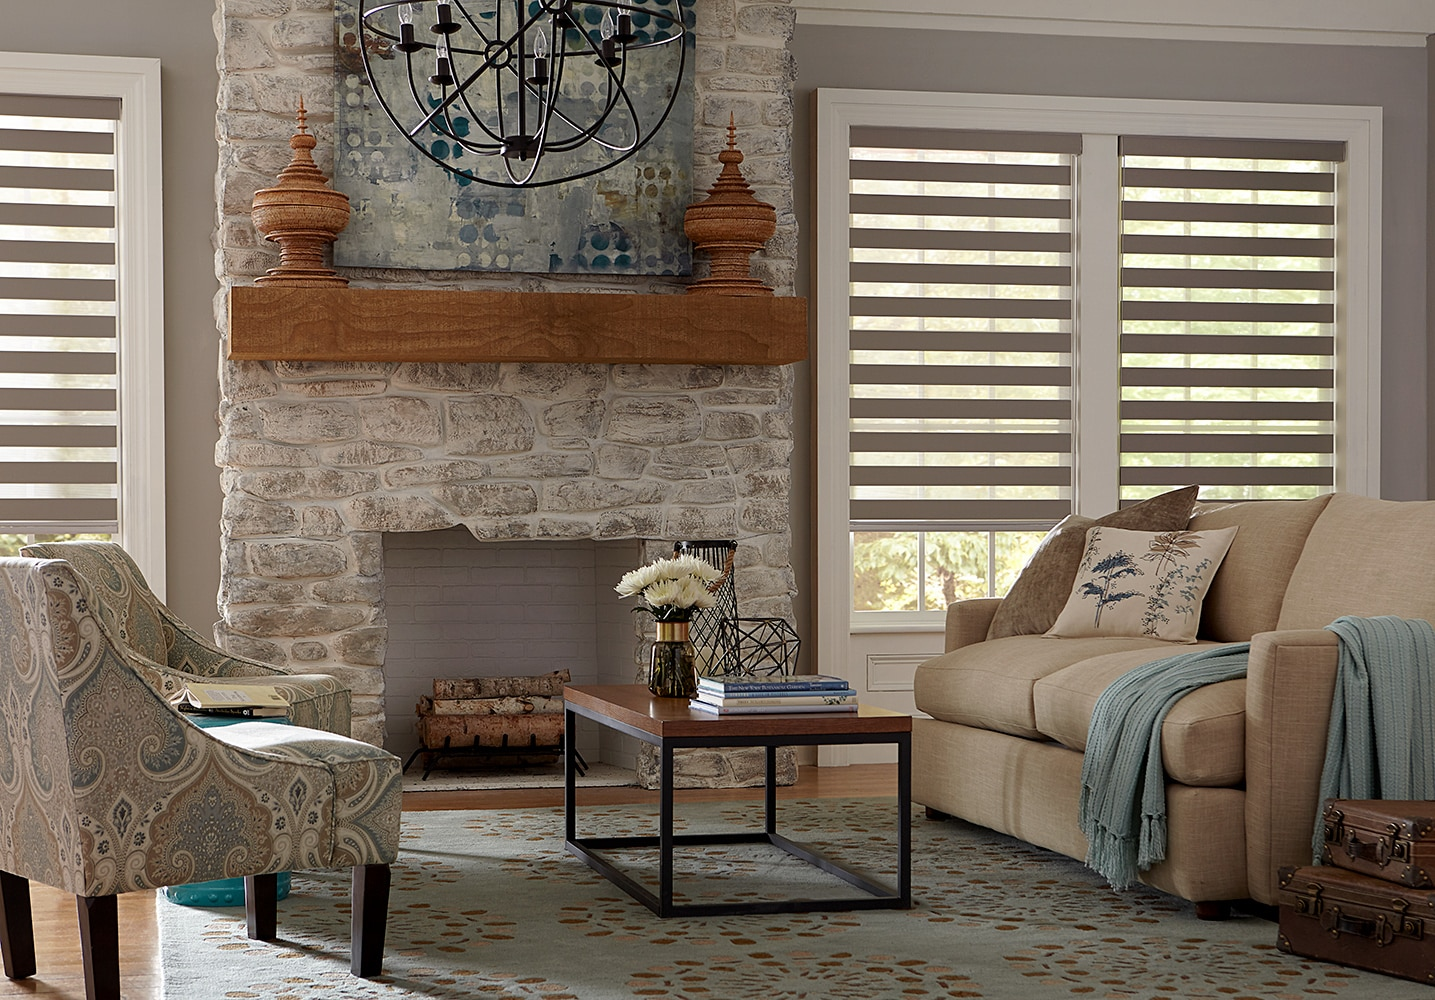 home decorators collection installation instructions home decorators collection blinds installation 12837